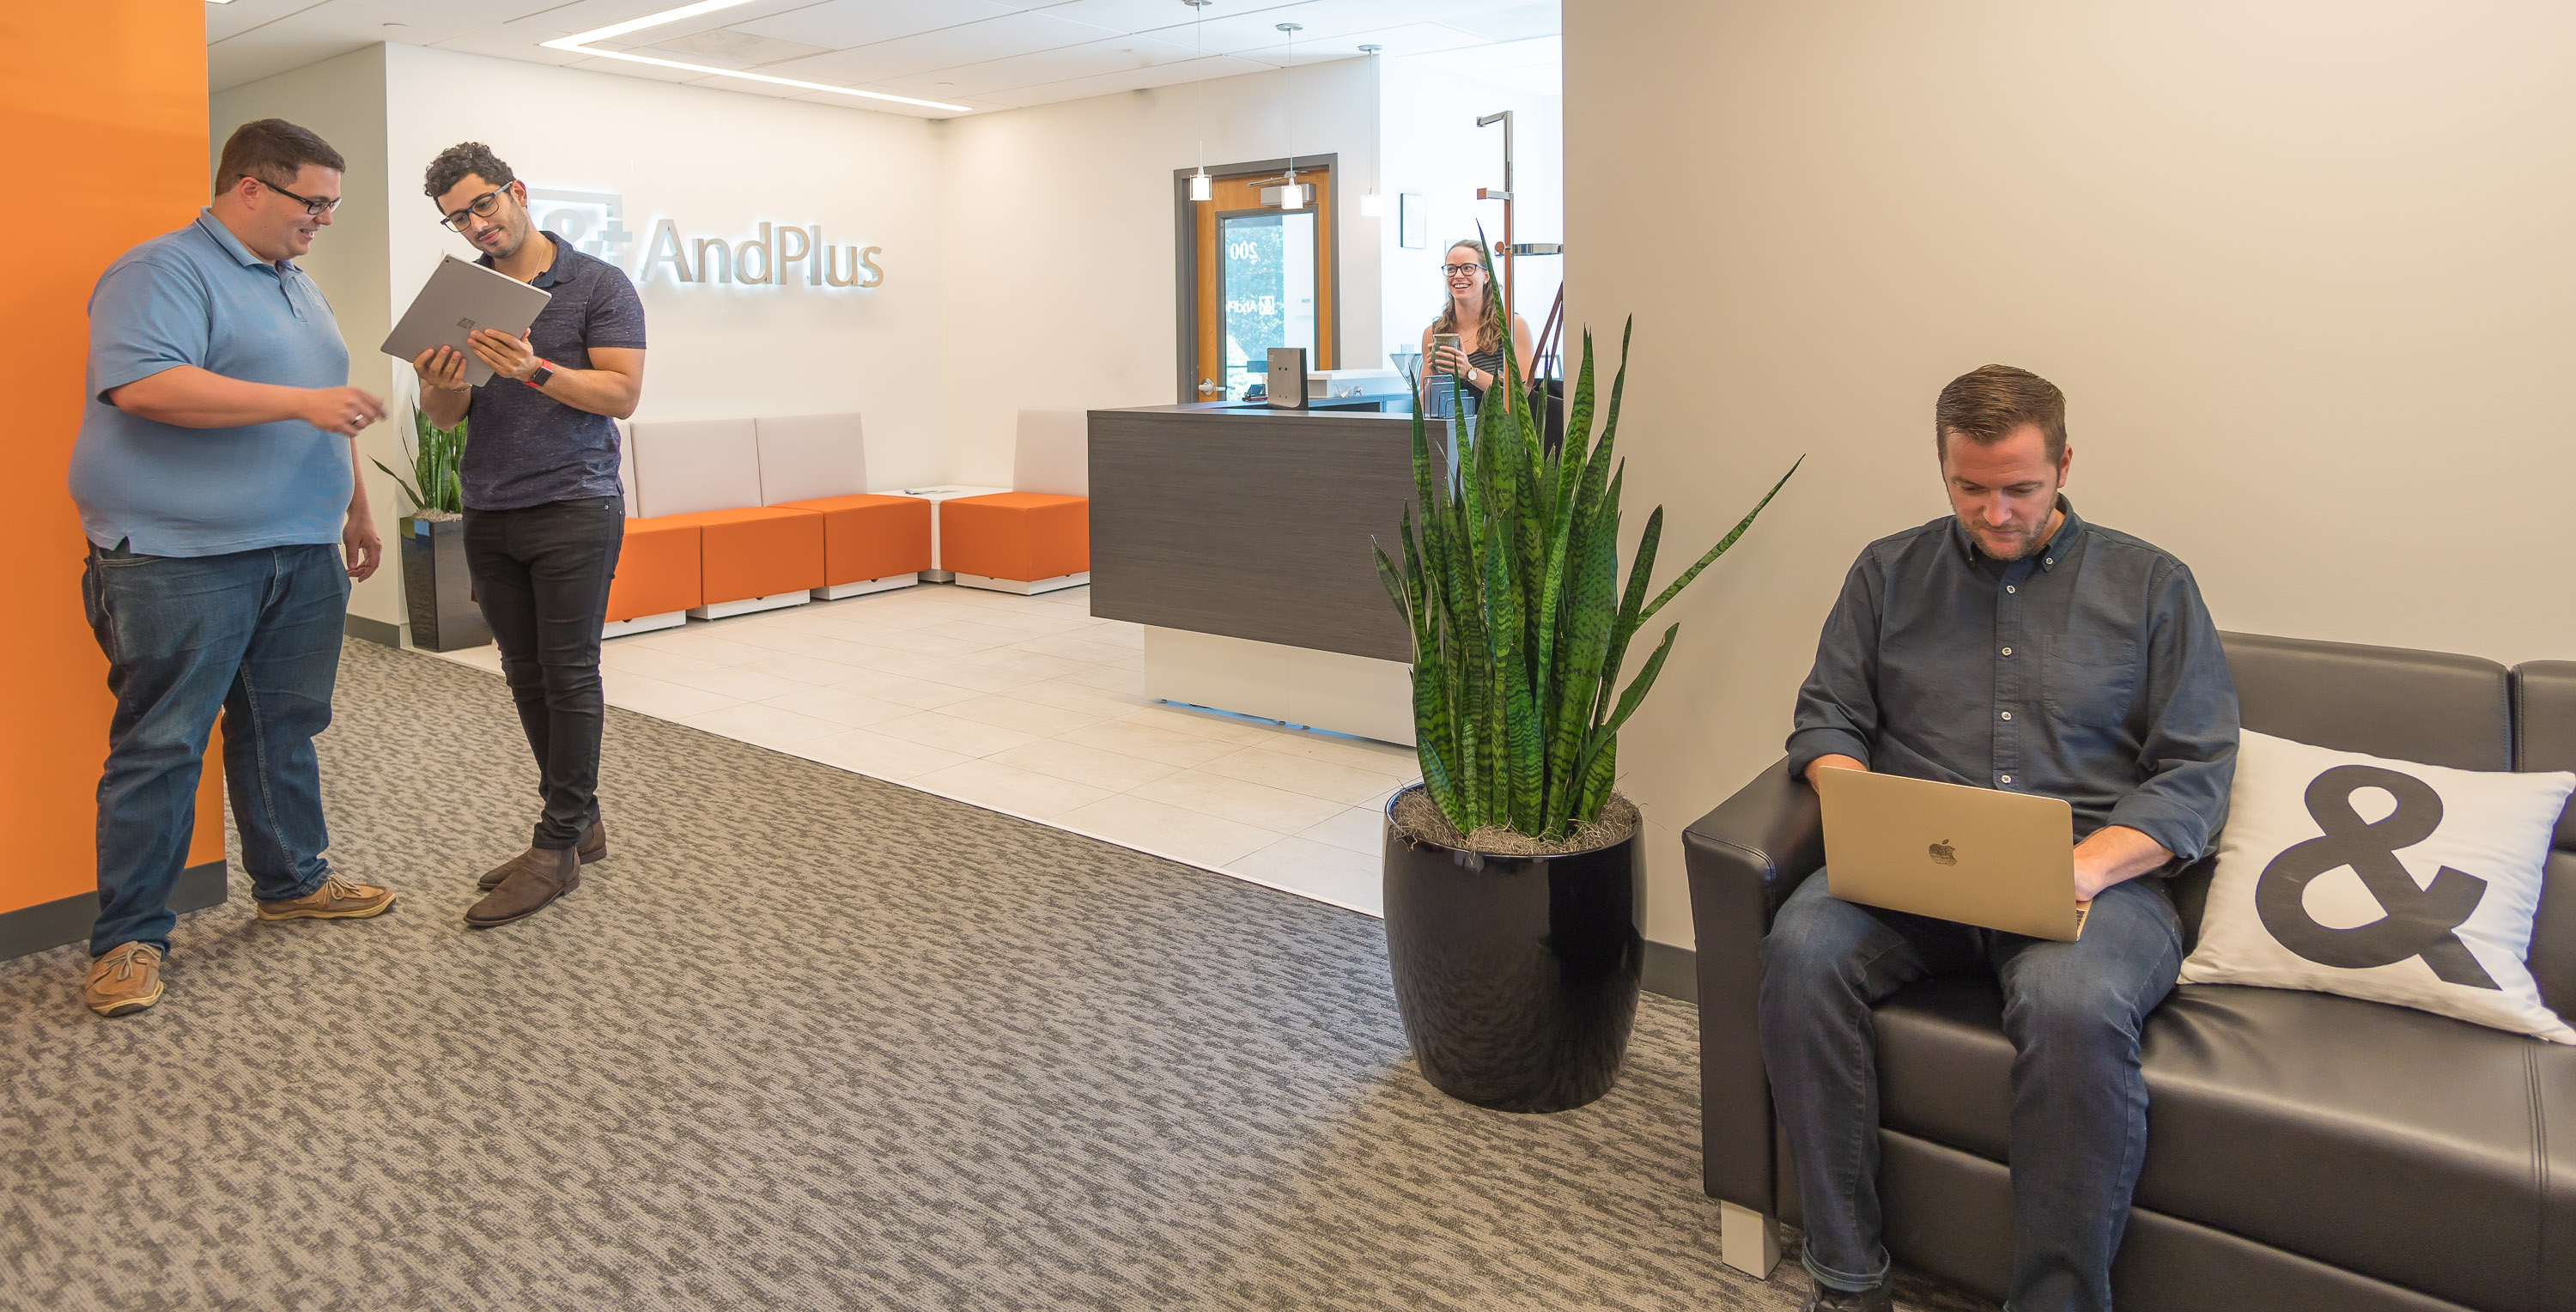 AndPlus builds custom software for any industry. From medical to financial technology.